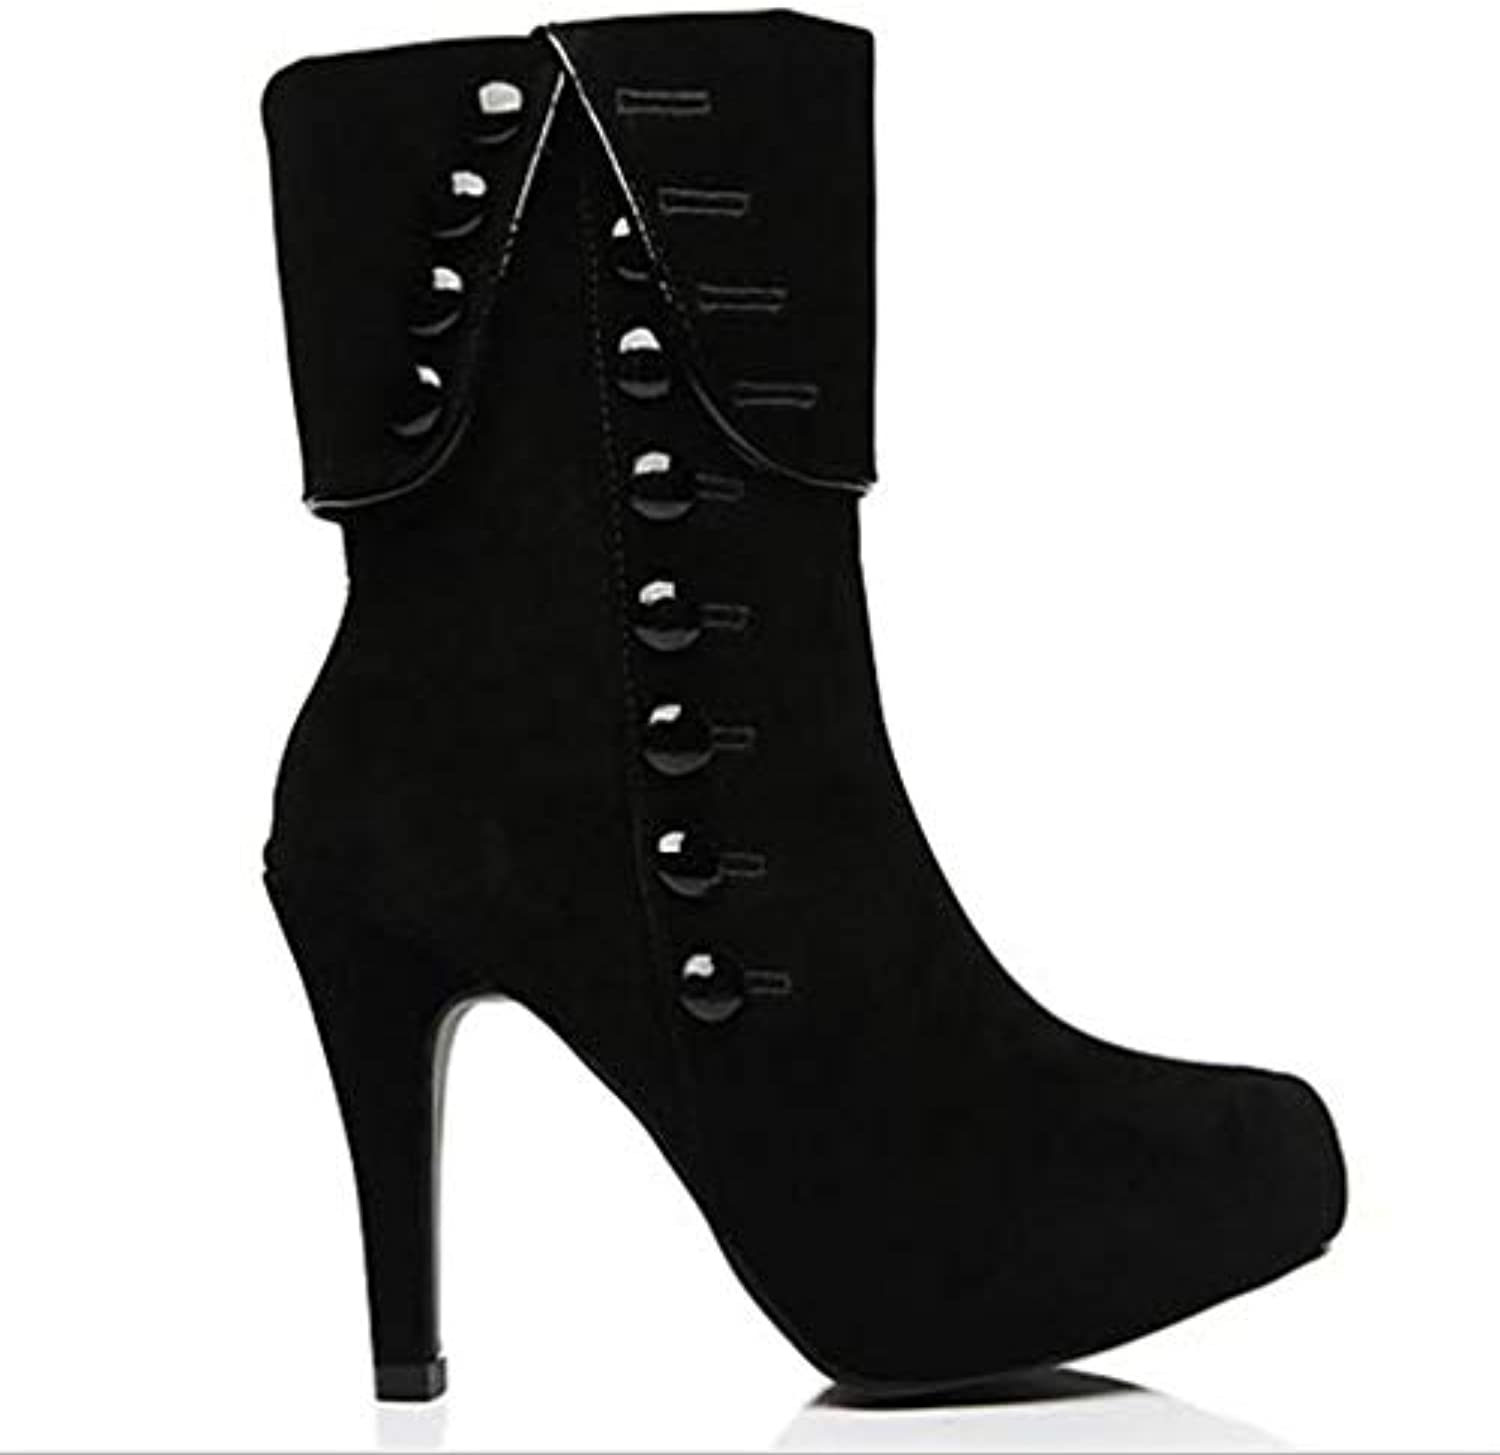 T-JULY Women's Autumn Winter Super High Heels Vintage Boots Fashion Casual shoes SuedeThin Heel Ankle Boots